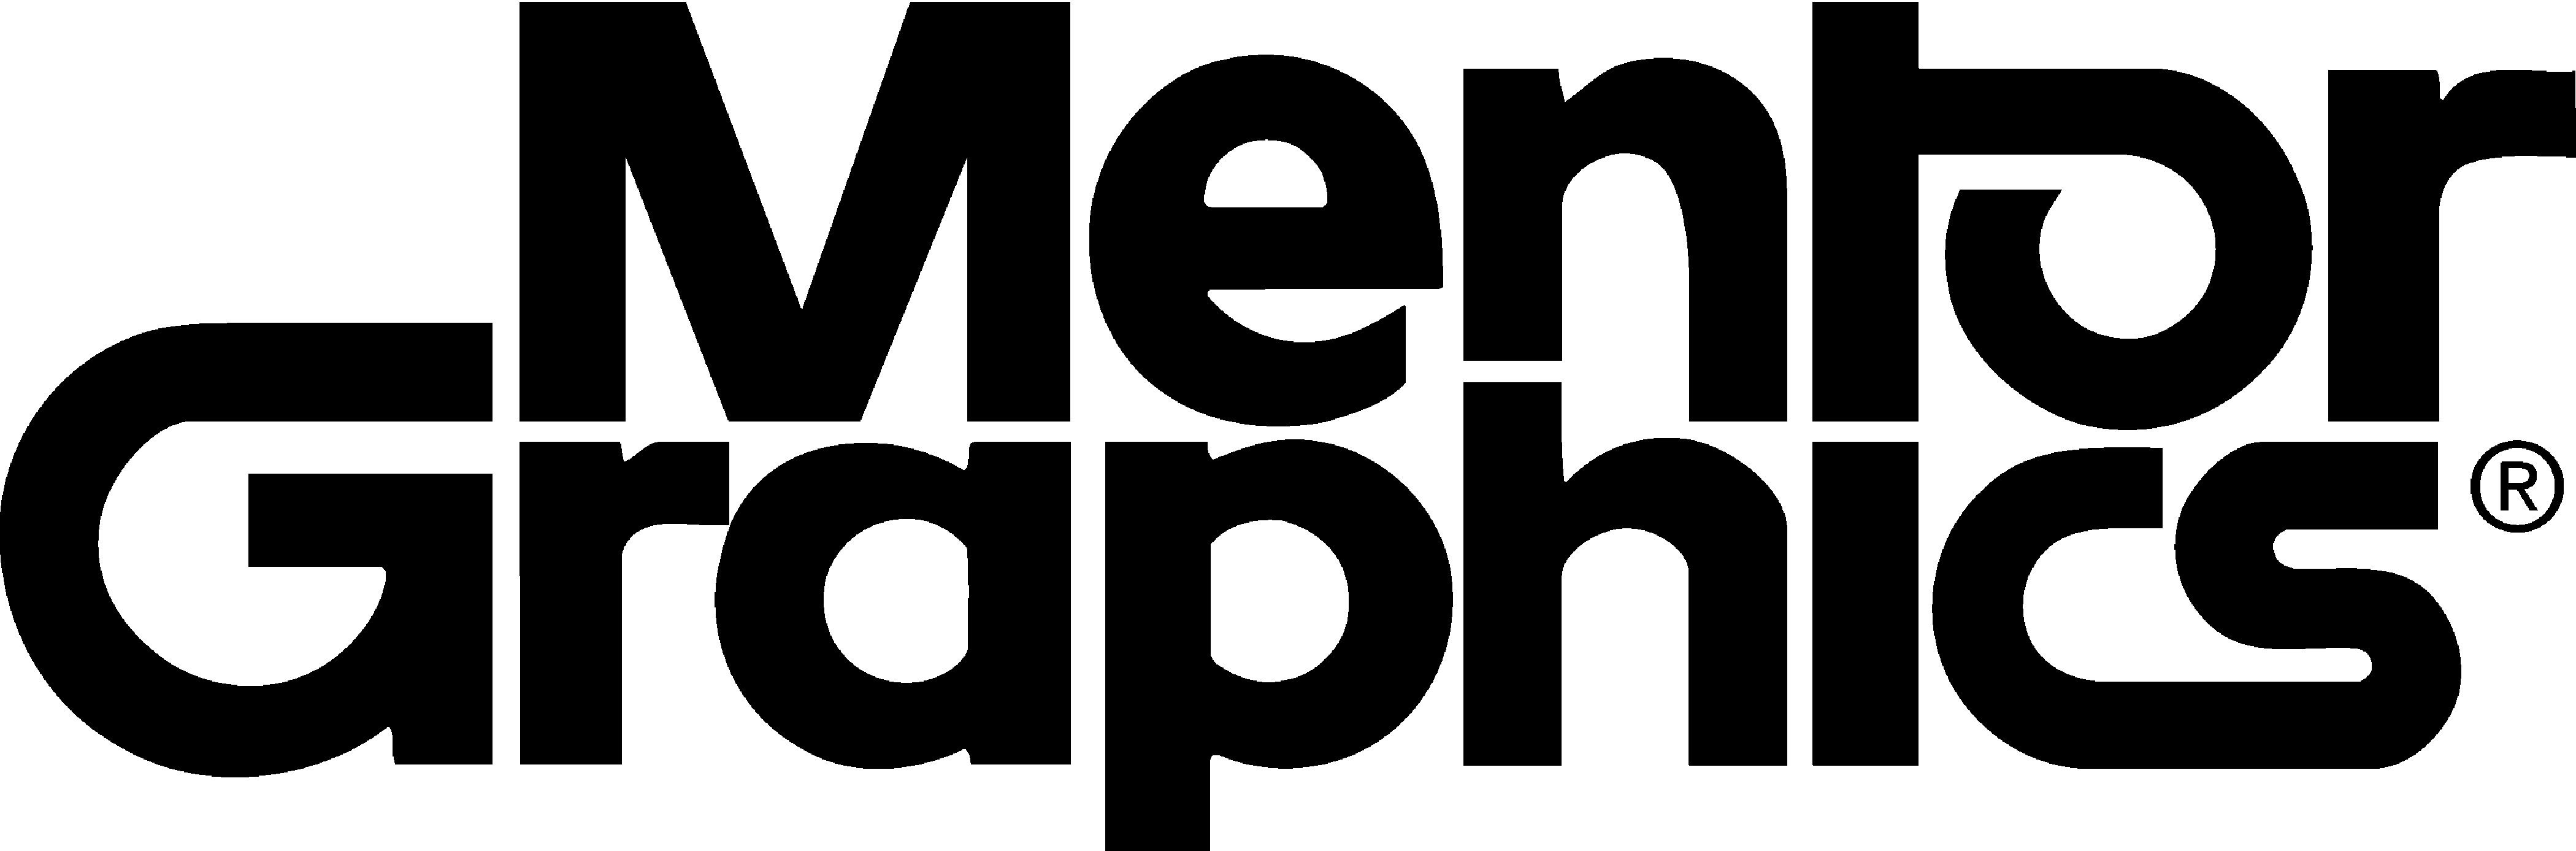 Mentor Graphics Corp logo